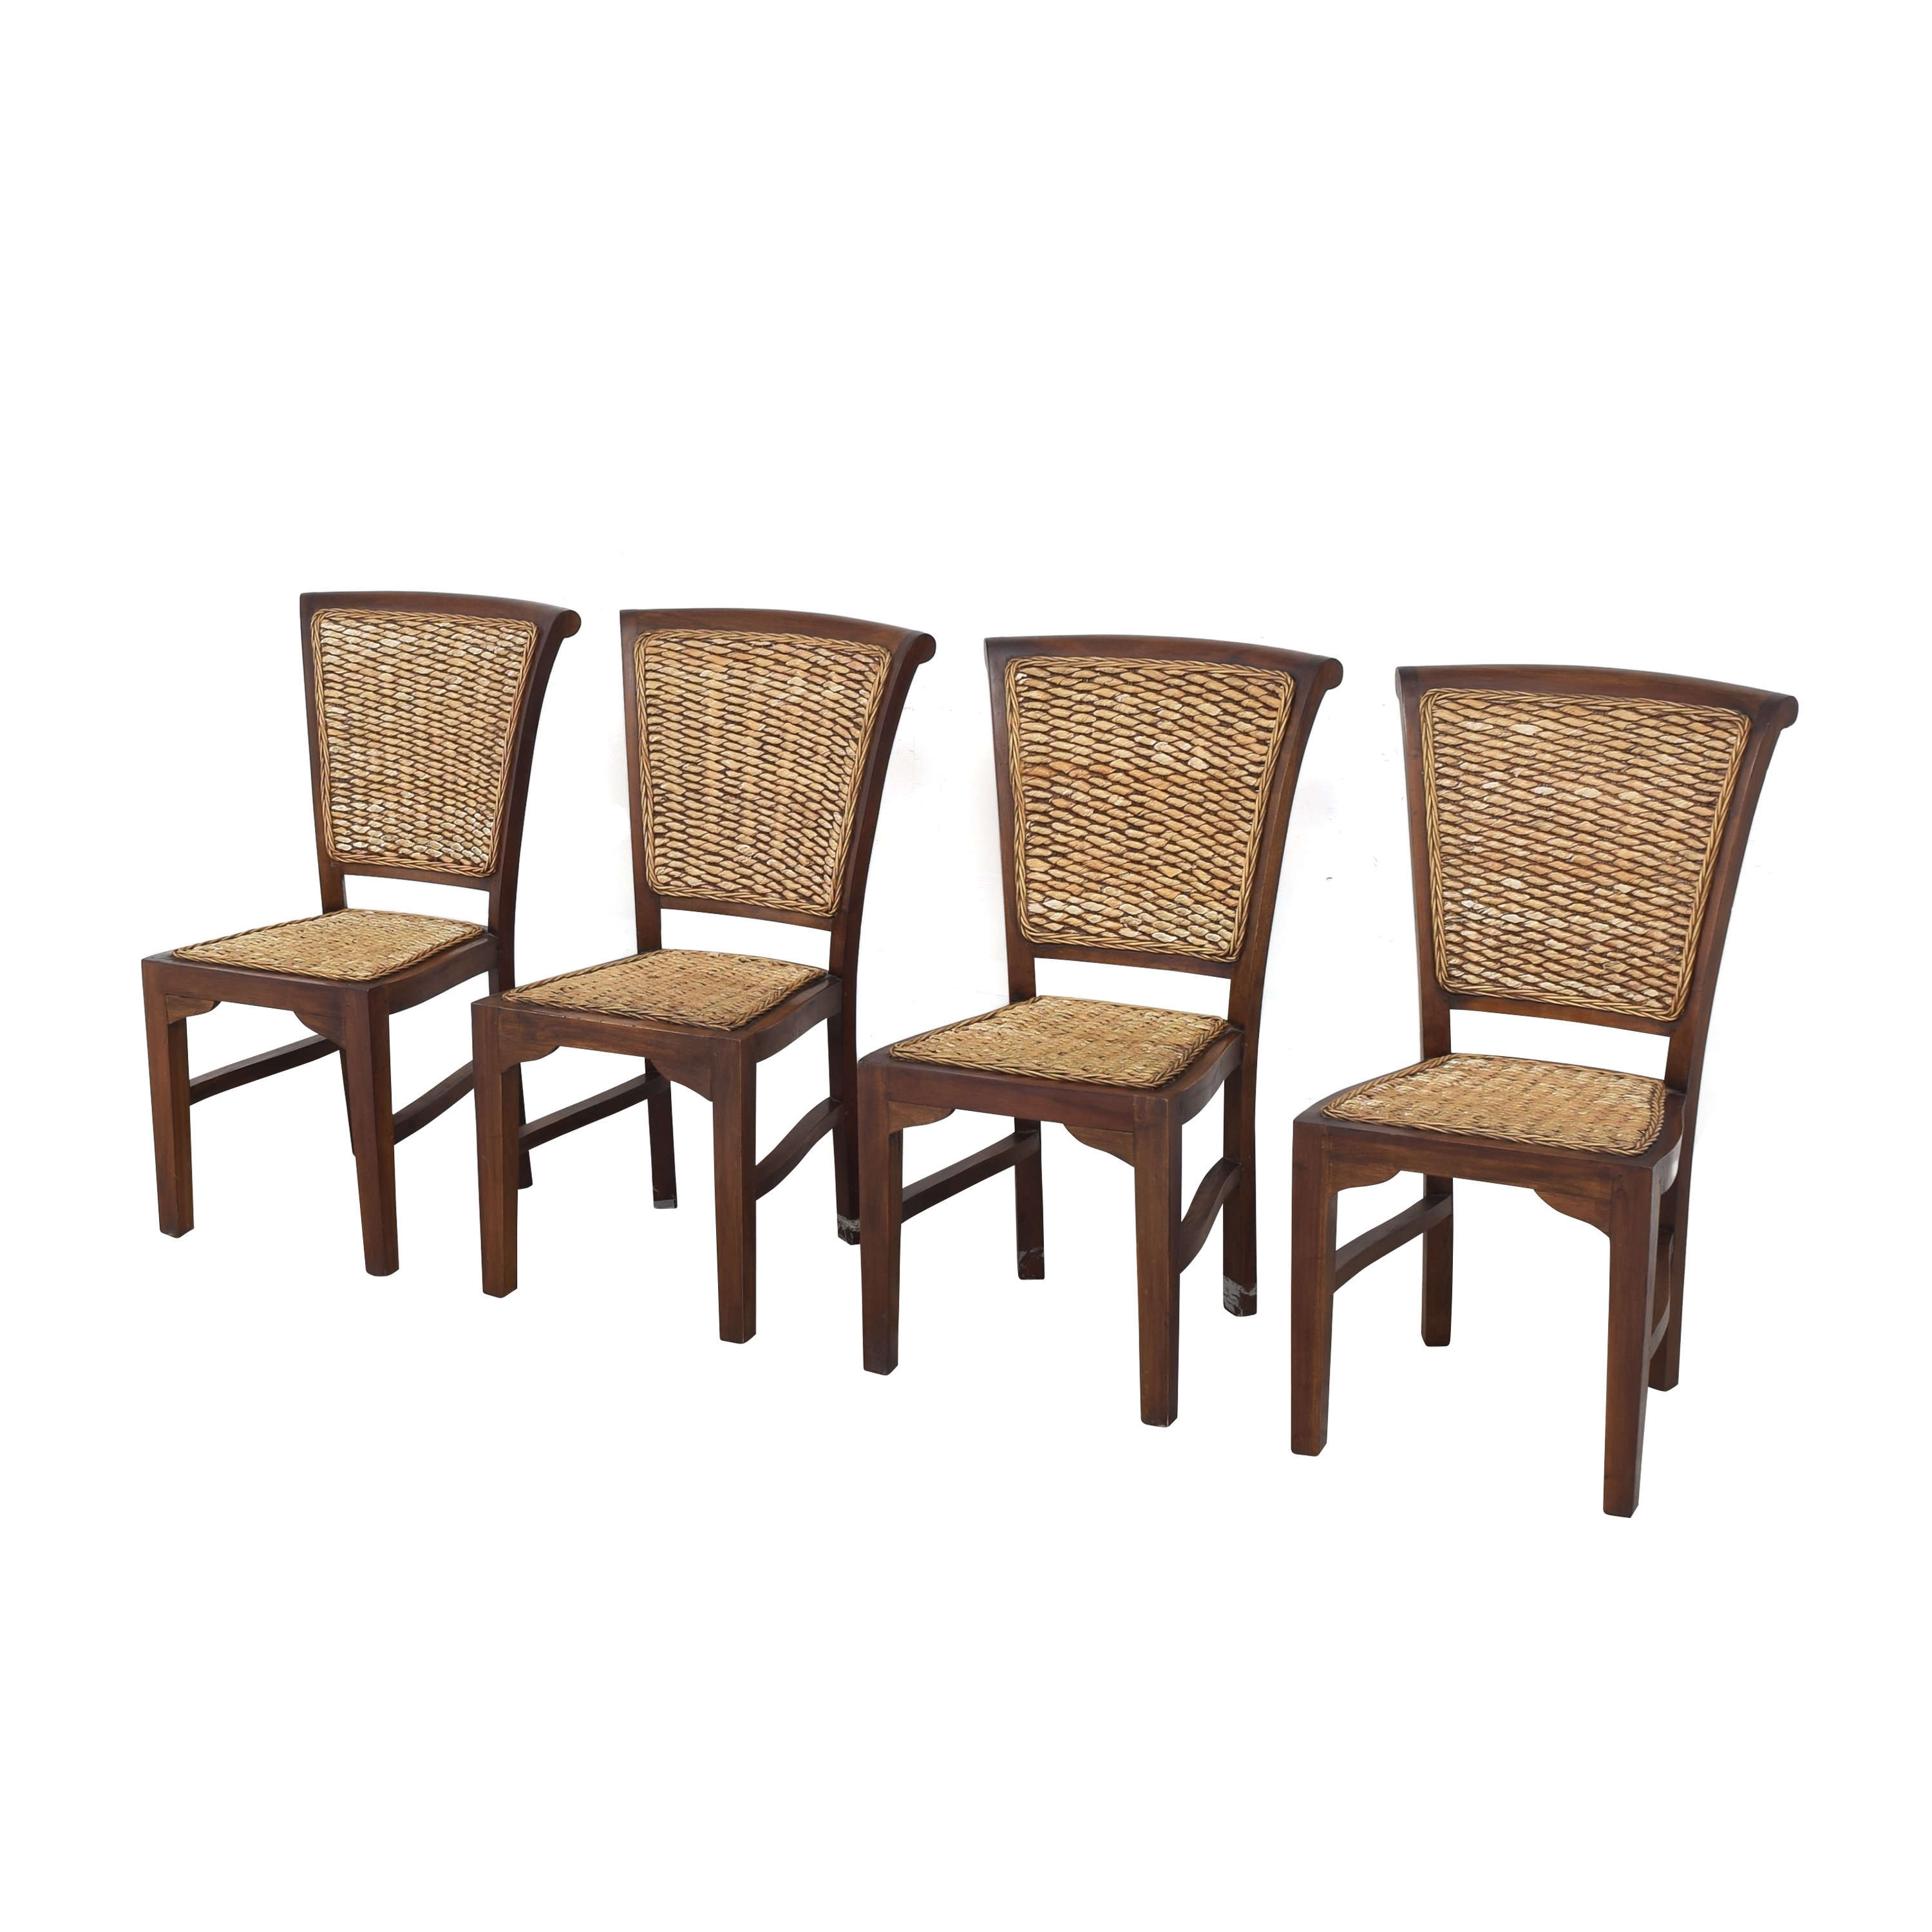 ABC Carpet & Home ABC Carpet & Home Woven Dining Chairs for sale